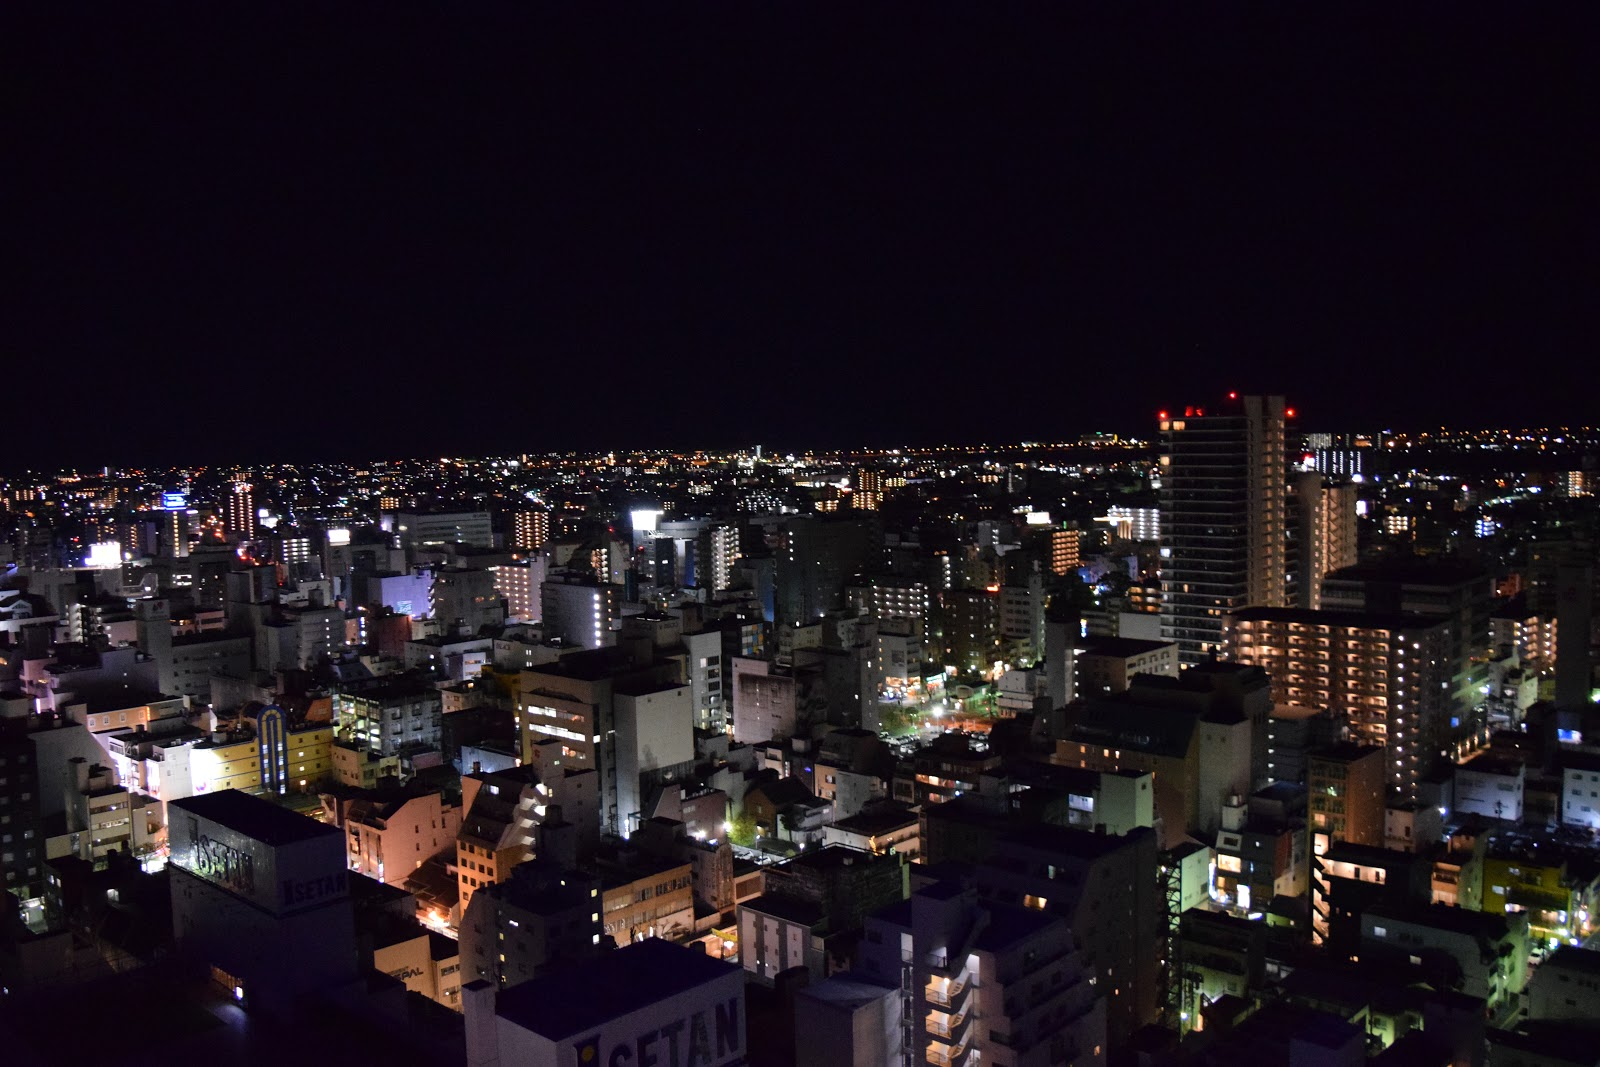 View of Shizuoka city skyline at night